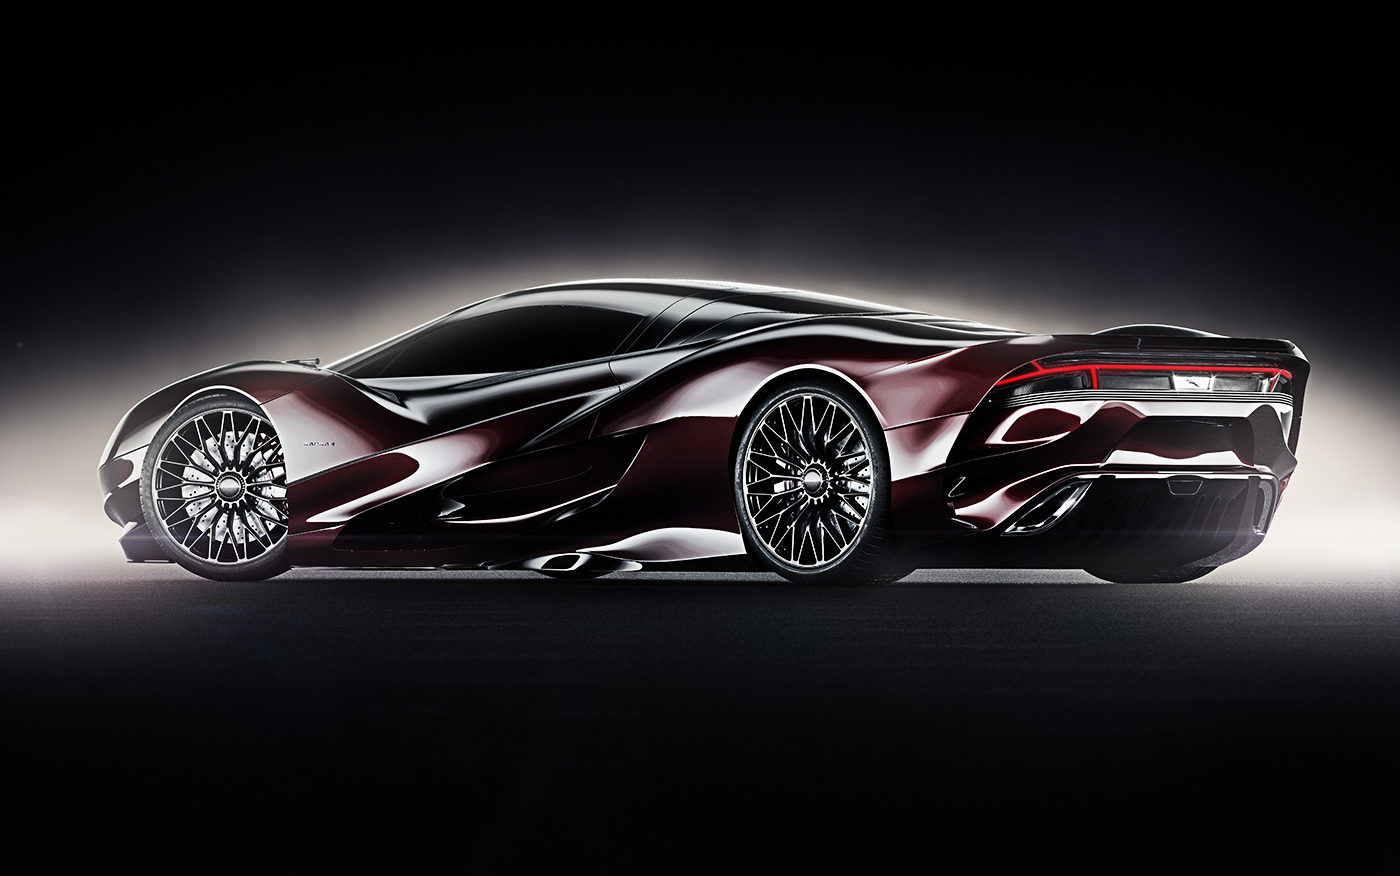 Jaguar XJ220 Successor Reimagined For The 21st Century